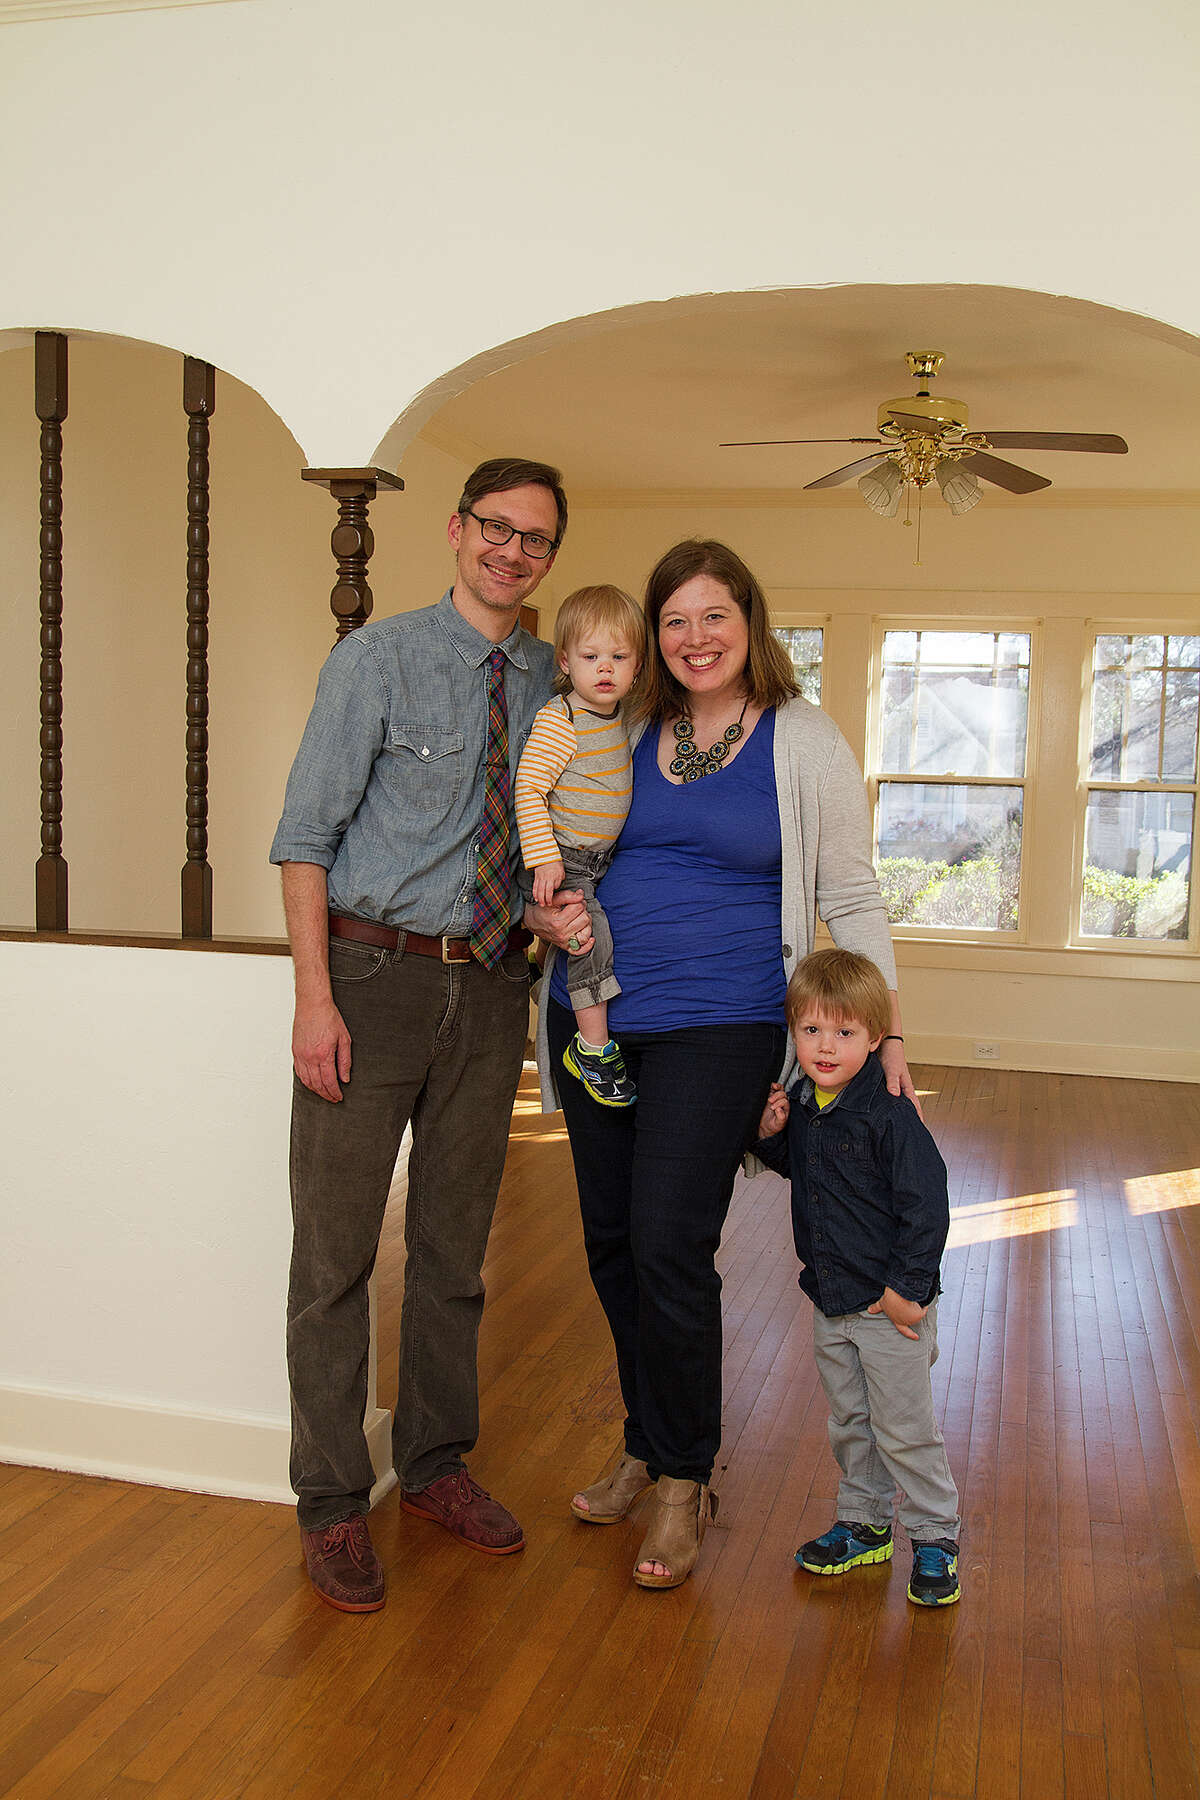 Joshua and Emily Robbins with their children Caedmon, 15 months, and Harper, 3, are purchasing a home in Monticello Park. The Robbinses received a $15,000 grant for down-payment assistance from the NeighborhoodLIFT program.